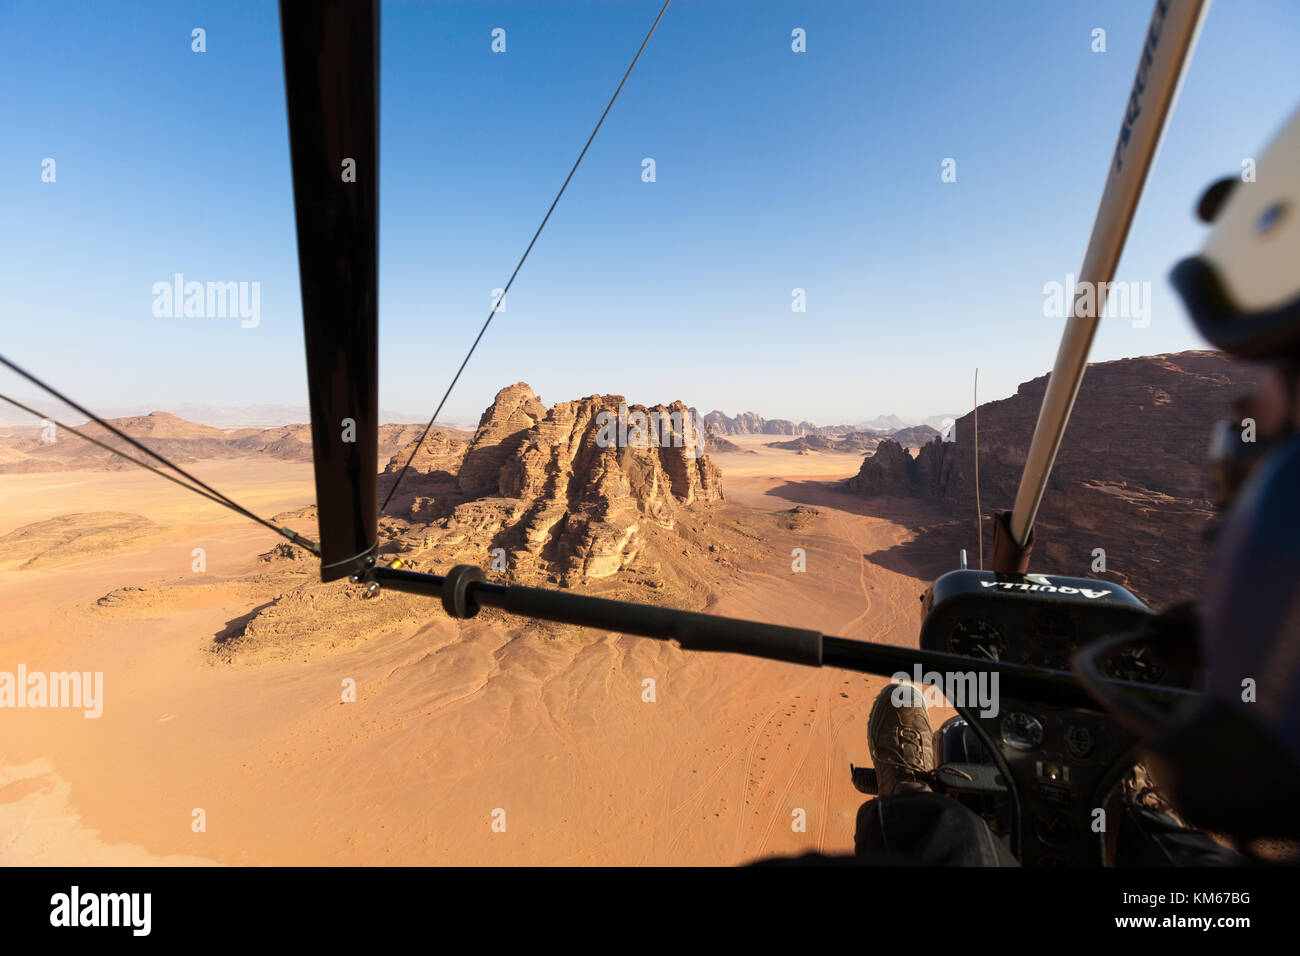 Flying over the Wadi Rum, Jordan - Stock Image